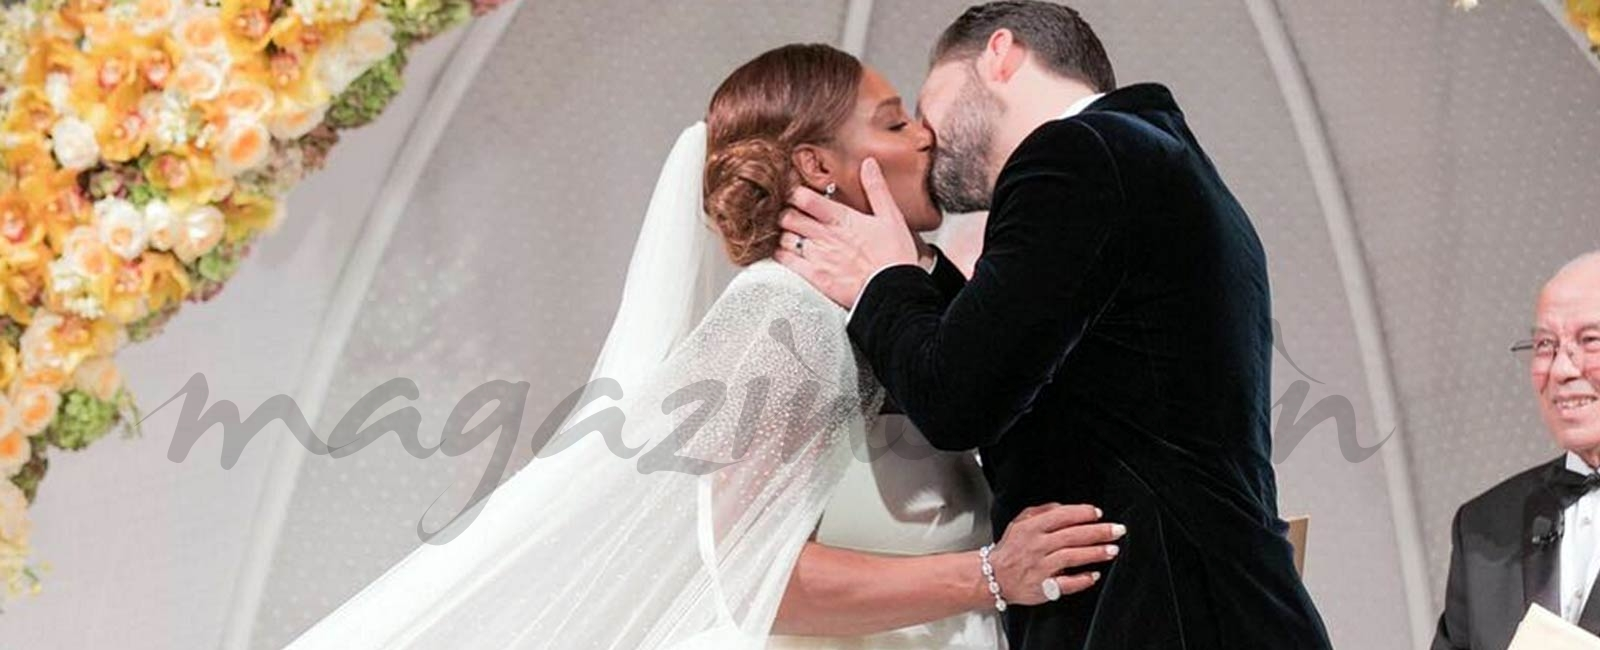 La romántica boda de Serena Williams